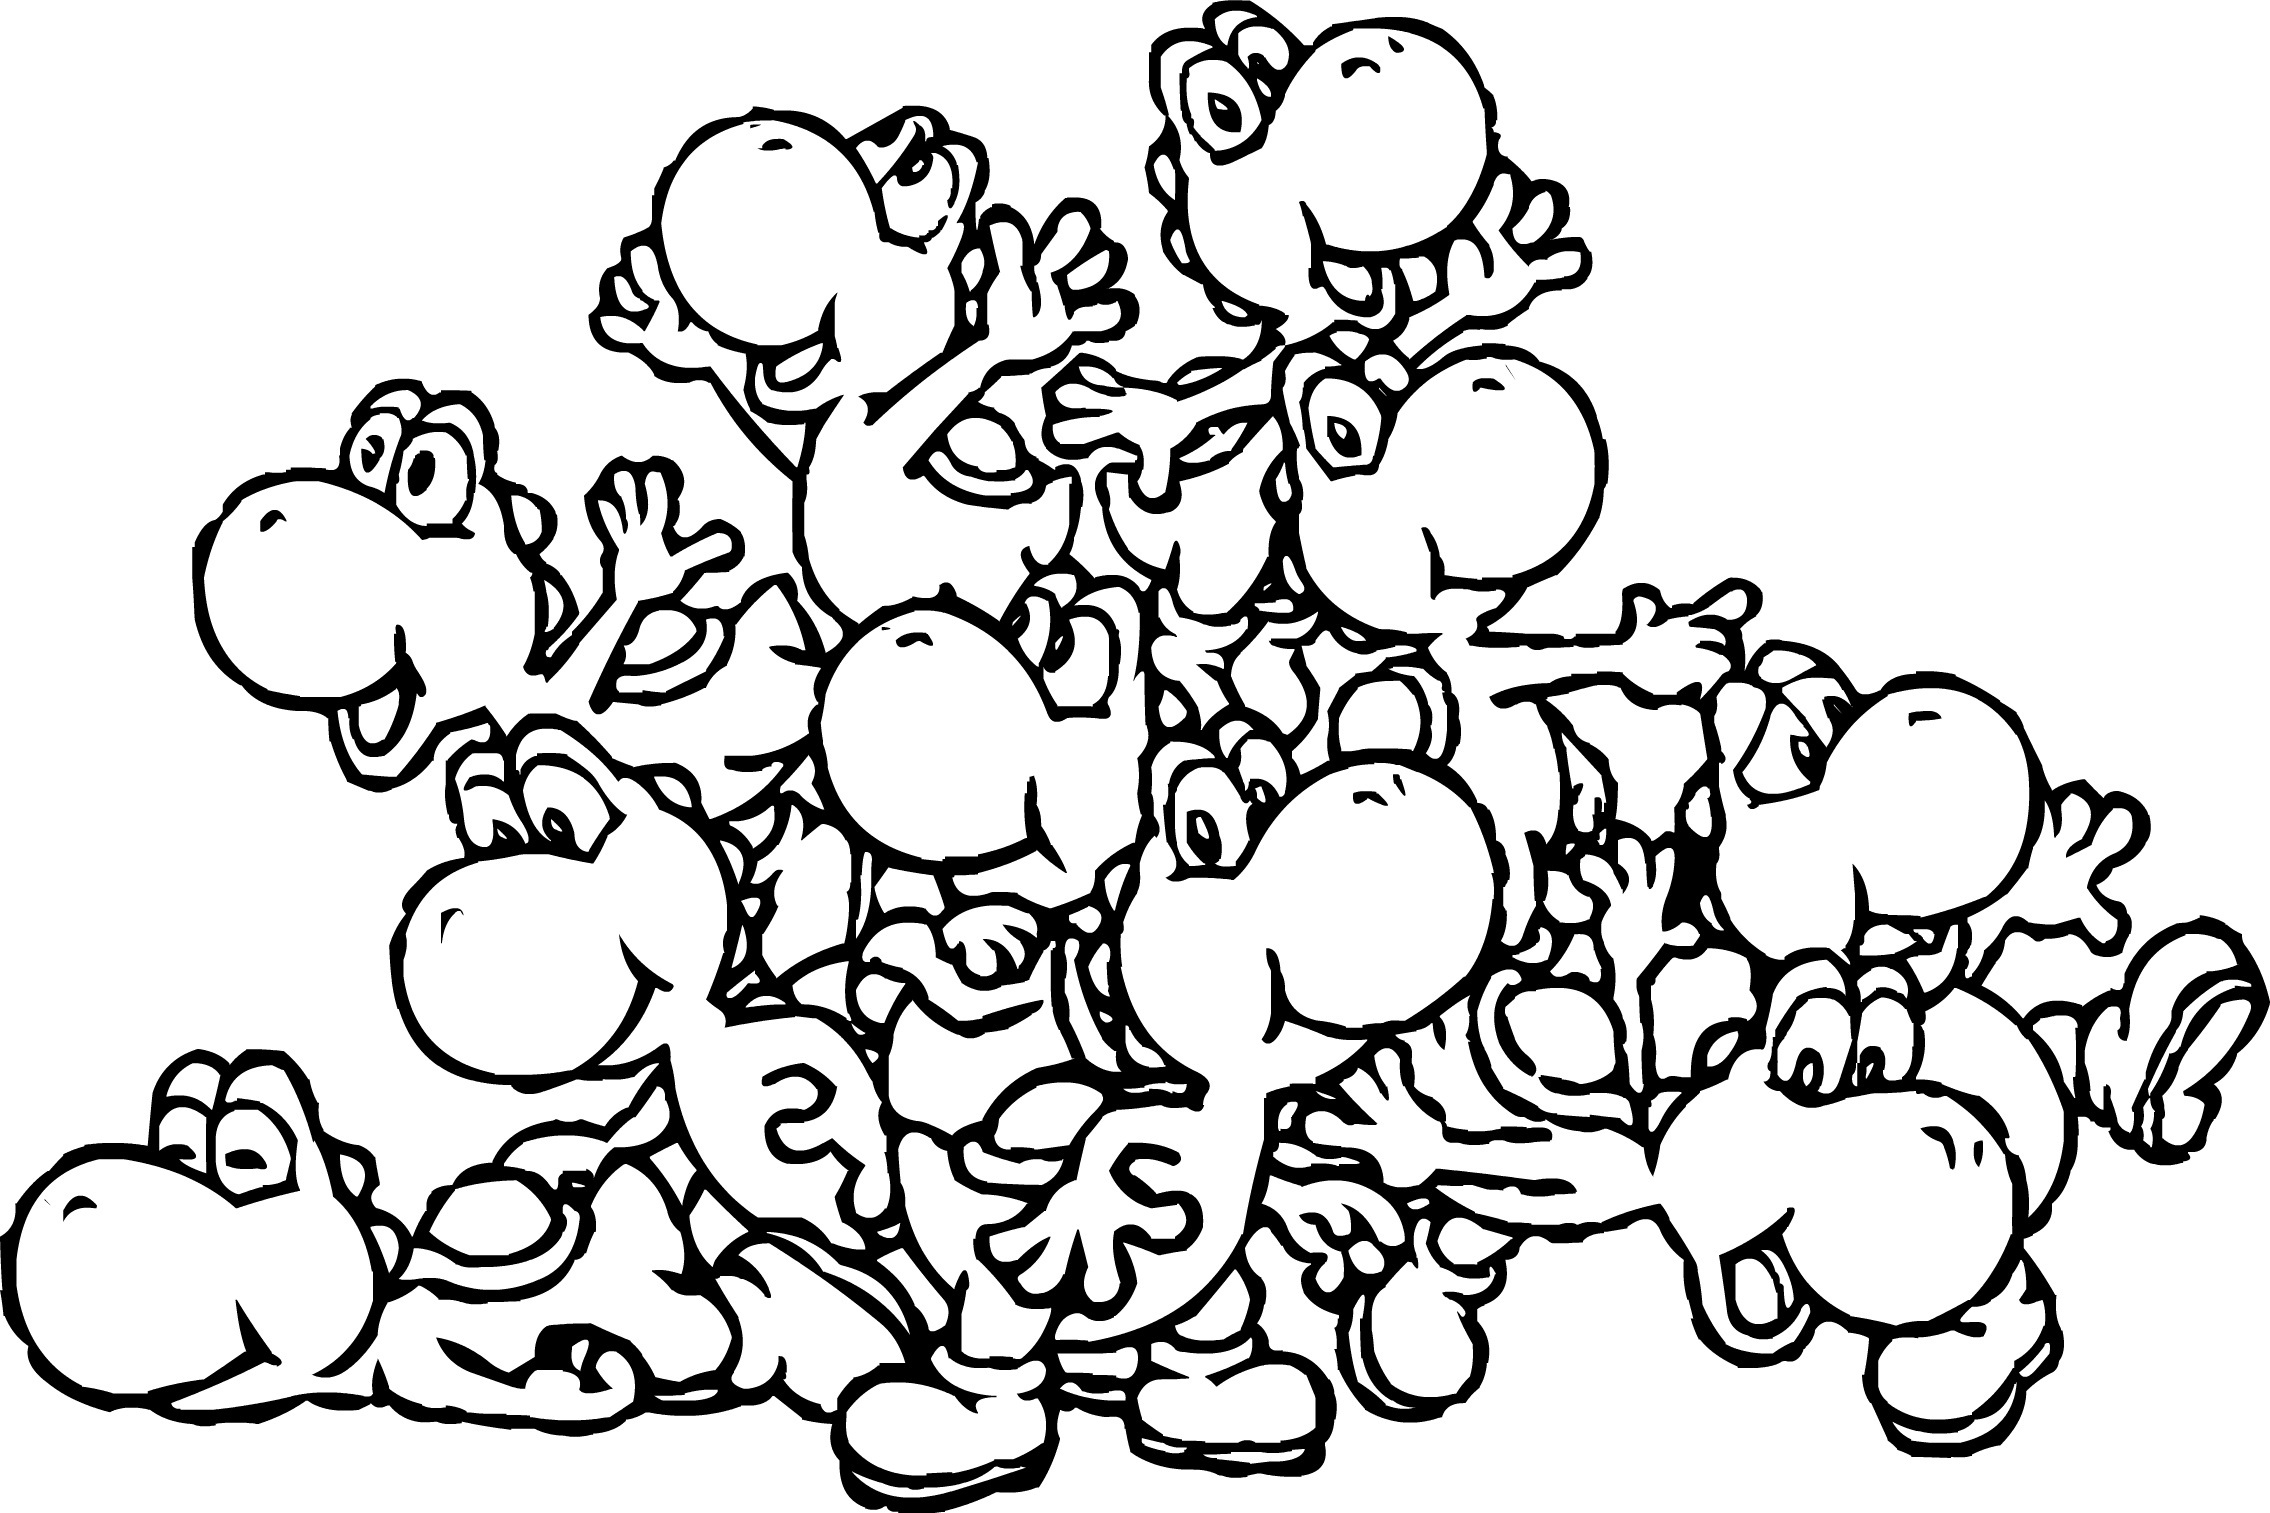 Printable Yoshi Coloring Pages Coloring Me Print Coloring Pages